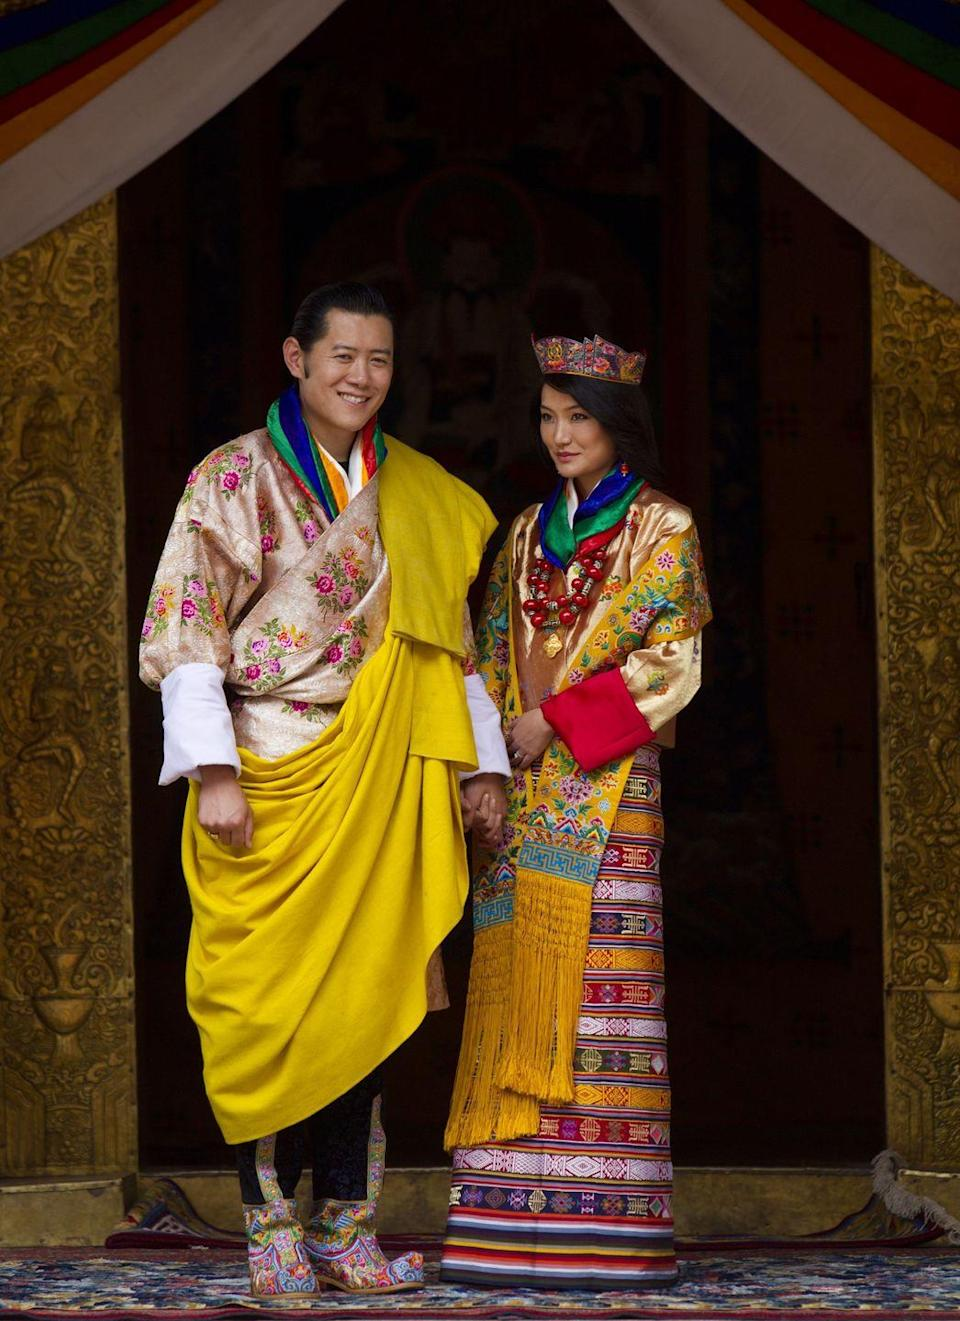 "<p>Jetsun Puna wore a brilliantly vibrant <em>kira—</em>the national dress for Bhutanese women—for her wedding to the world's youngest reigning monarch and head of a new democracy. Puna herself was only 21 years old at the time of her wedding, which makes her the world's <a href=""http://www.harpersbazaar.com/culture/politics/a14007032/the-worlds-youngest-queen/"" rel=""nofollow noopener"" target=""_blank"" data-ylk=""slk:youngest living queen"" class=""link rapid-noclick-resp"">youngest living queen</a>. </p>"